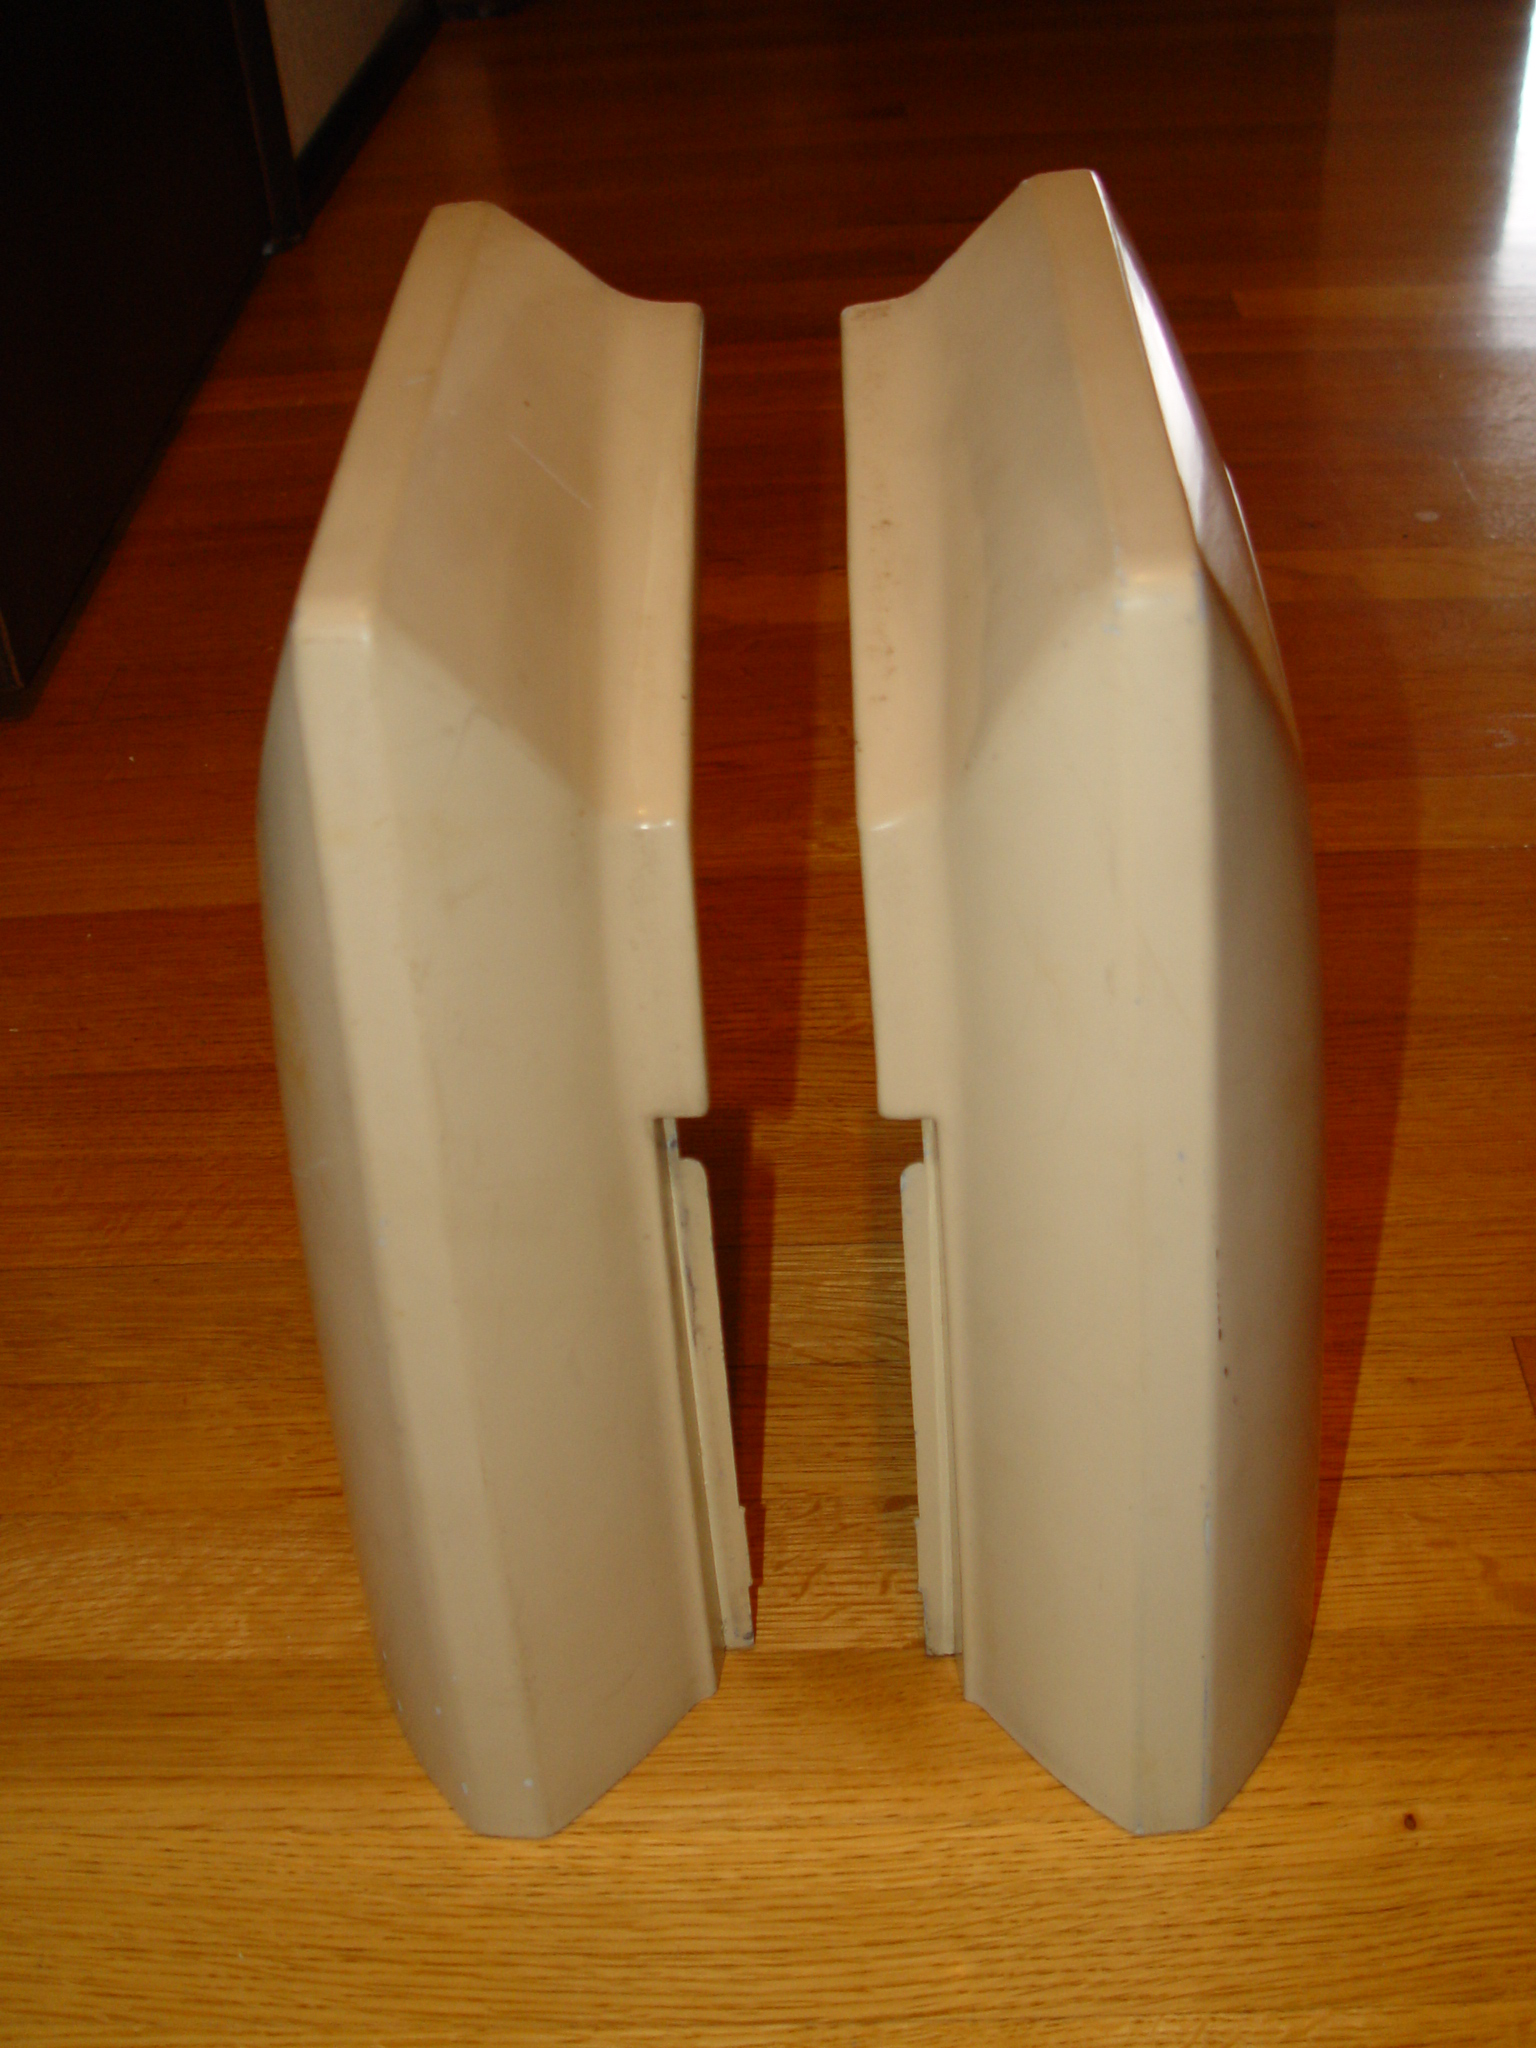 Who Makes Cadillac >> 1977 Buick Electra Rear Extensions With Marker Light